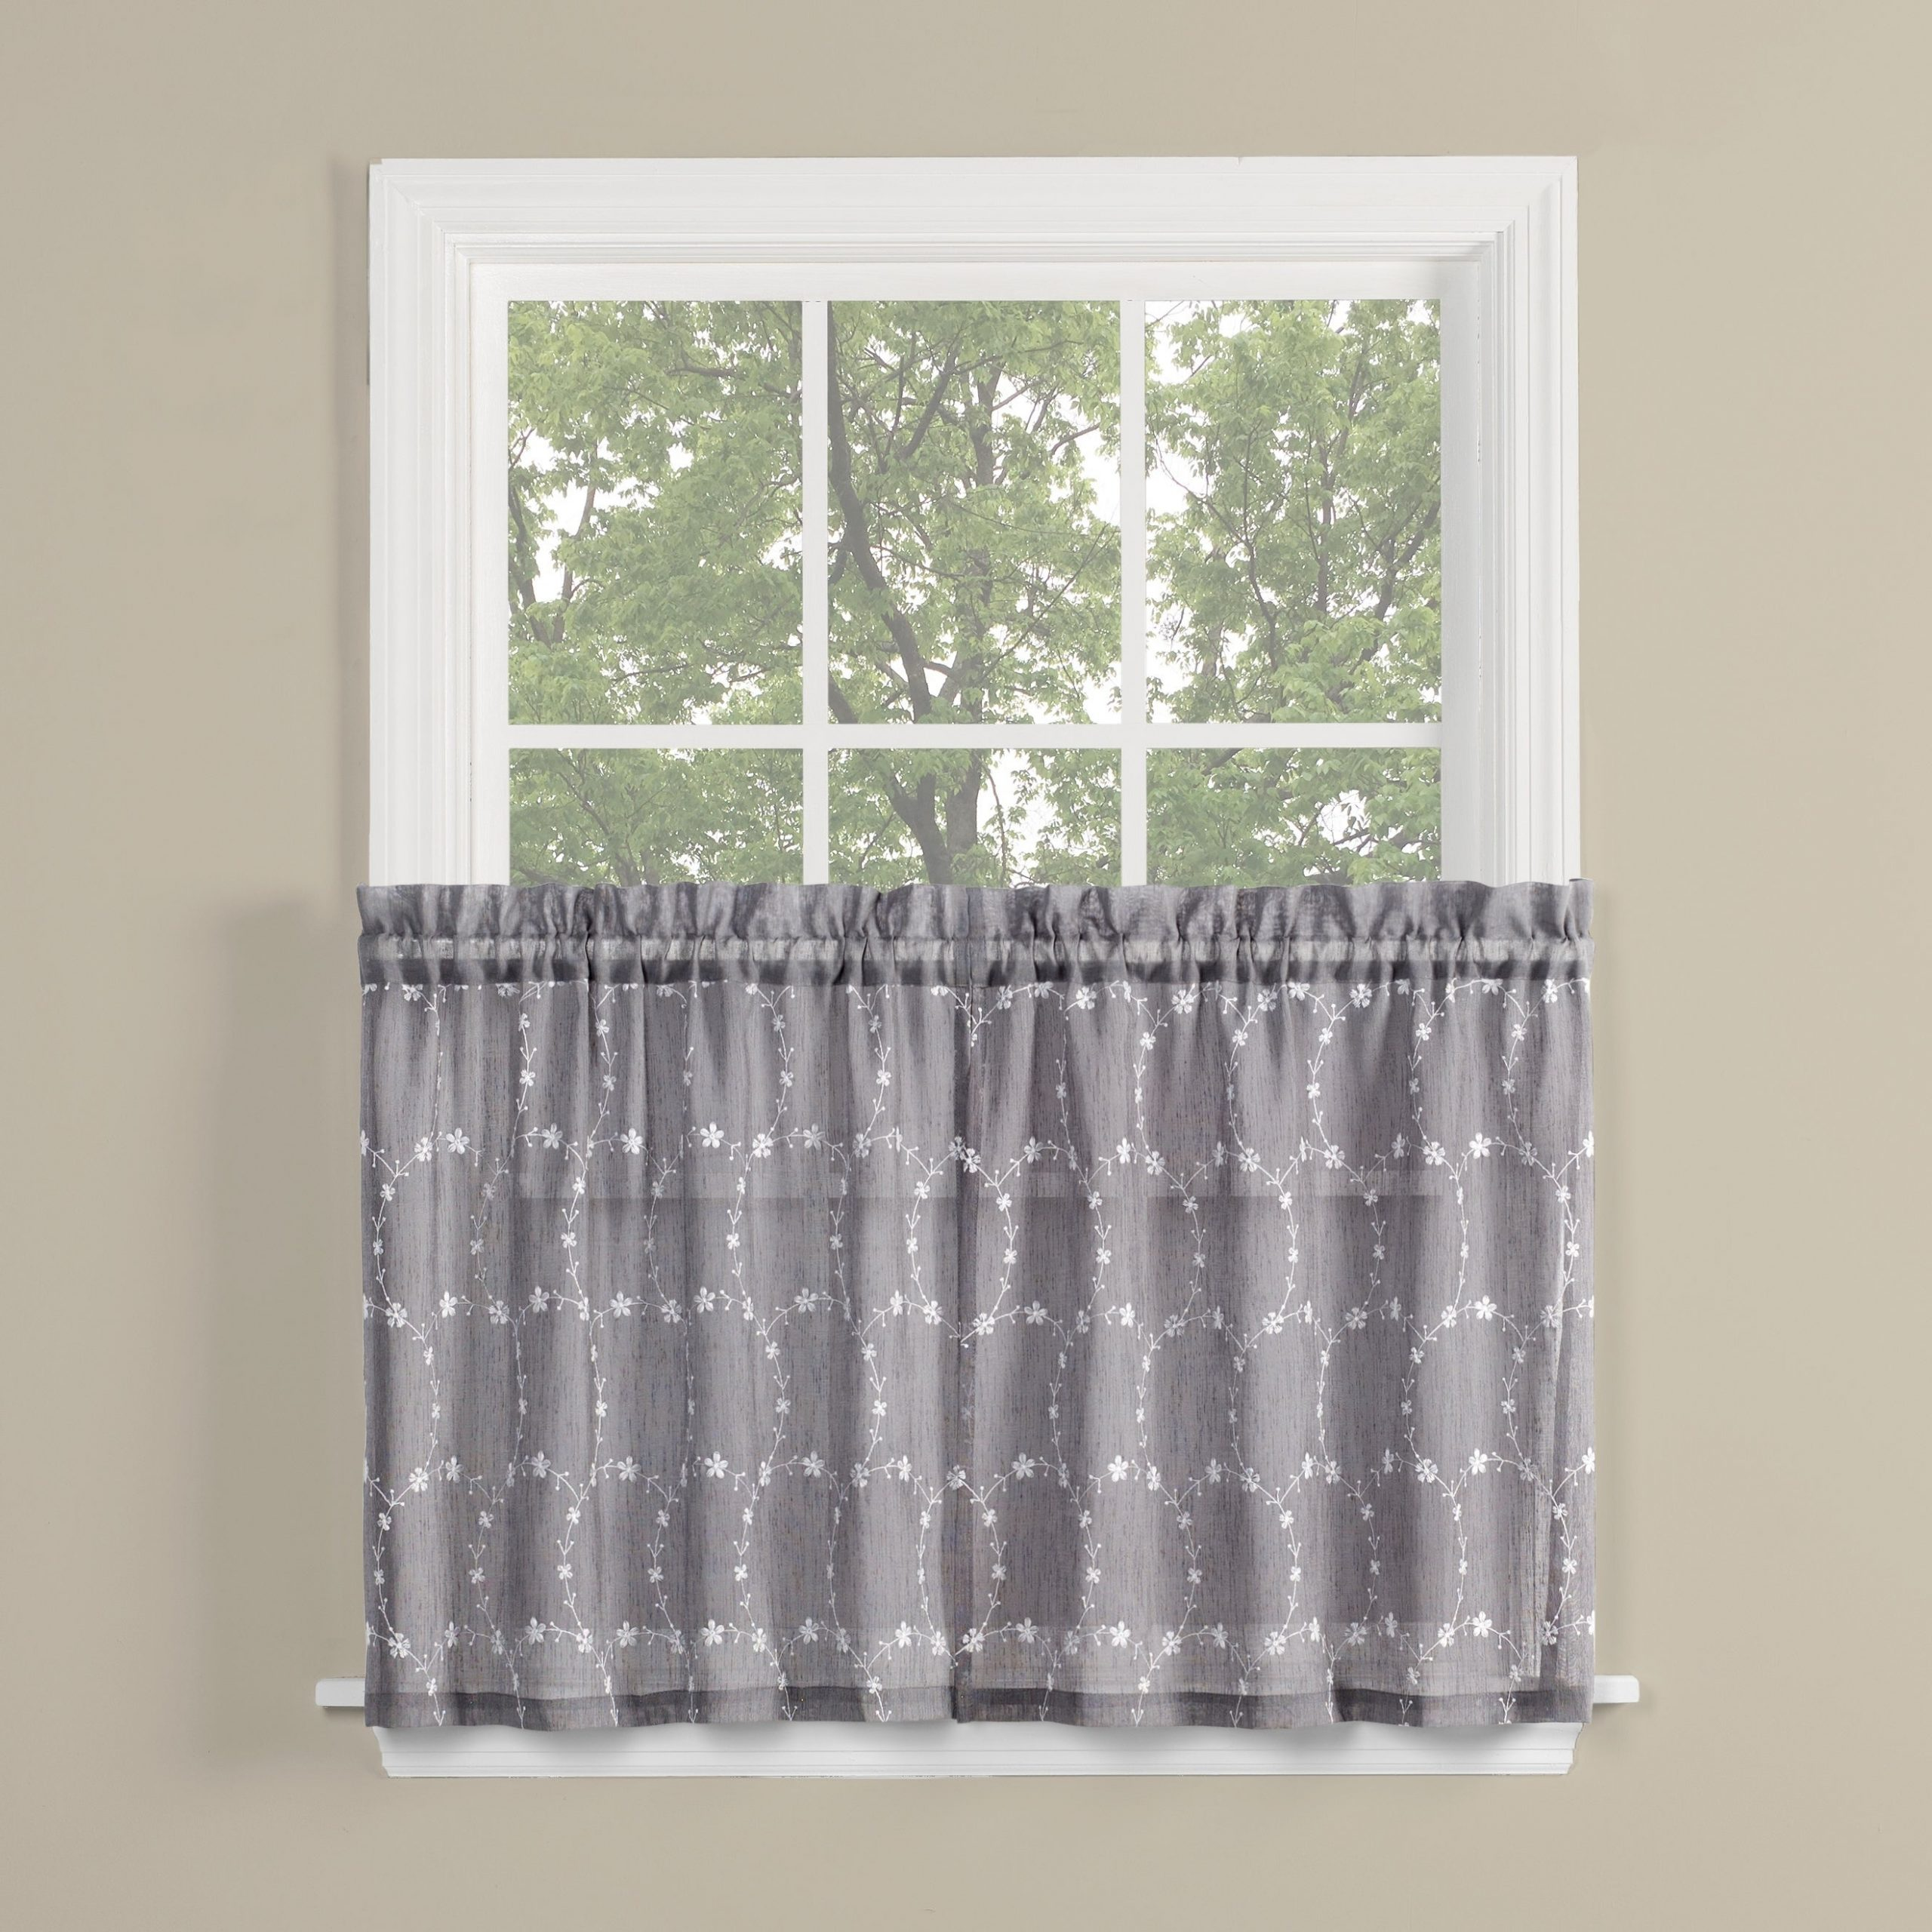 Widely Used Skl Home Briarwood 24 Inch Tier Pair In Dove Gray Pertaining To Flinders Forge 30 Inch Tiers In Dove Grey (View 4 of 20)